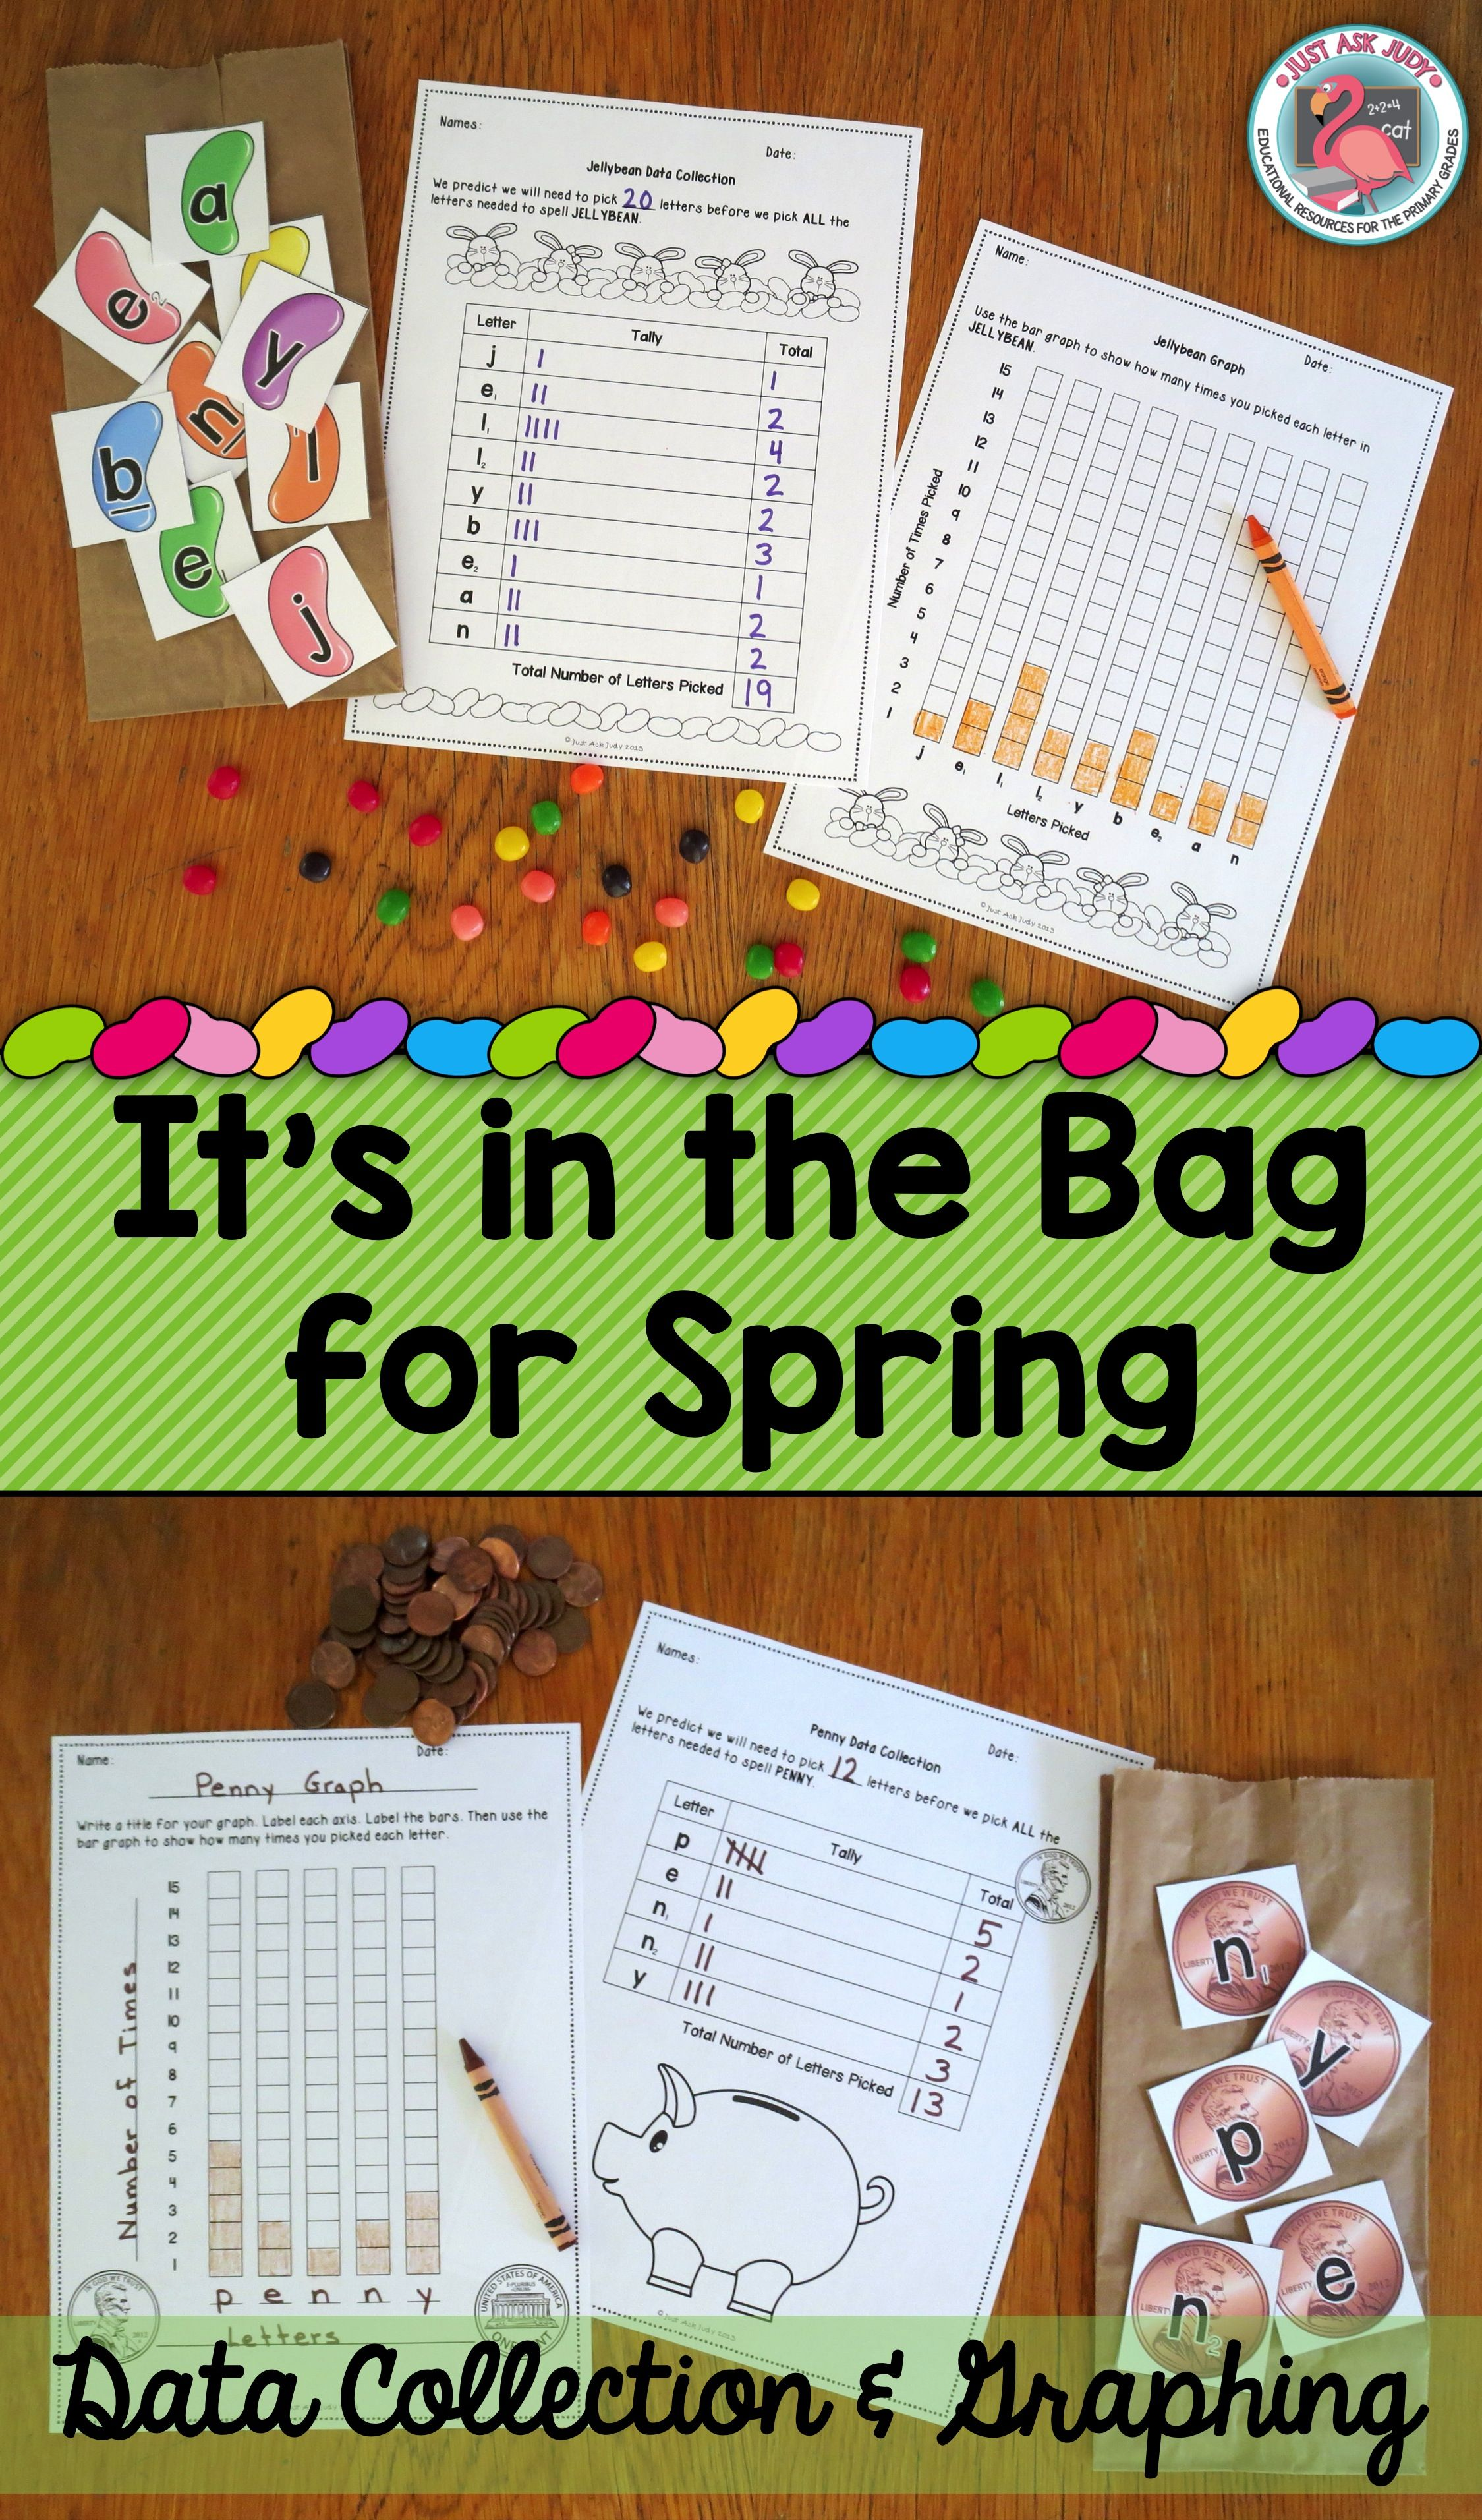 Bar Graph Worksheets 3rd Grade   Printable Worksheets and Activities for  Teachers [ 3823 x 2249 Pixel ]